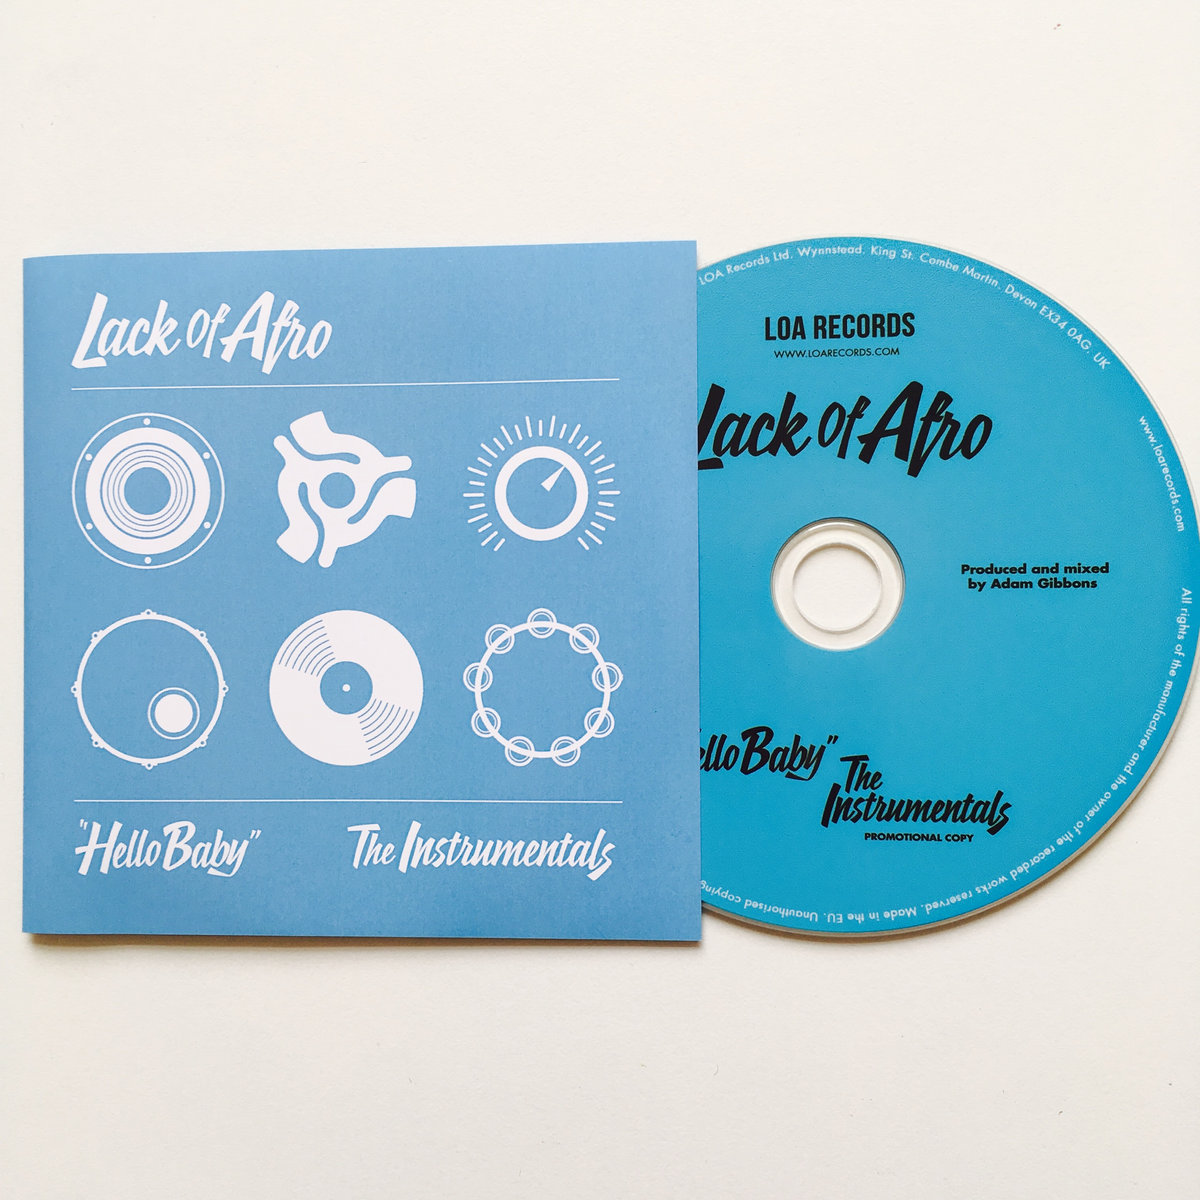 Hello Baby: The Instrumentals | Lack of Afro